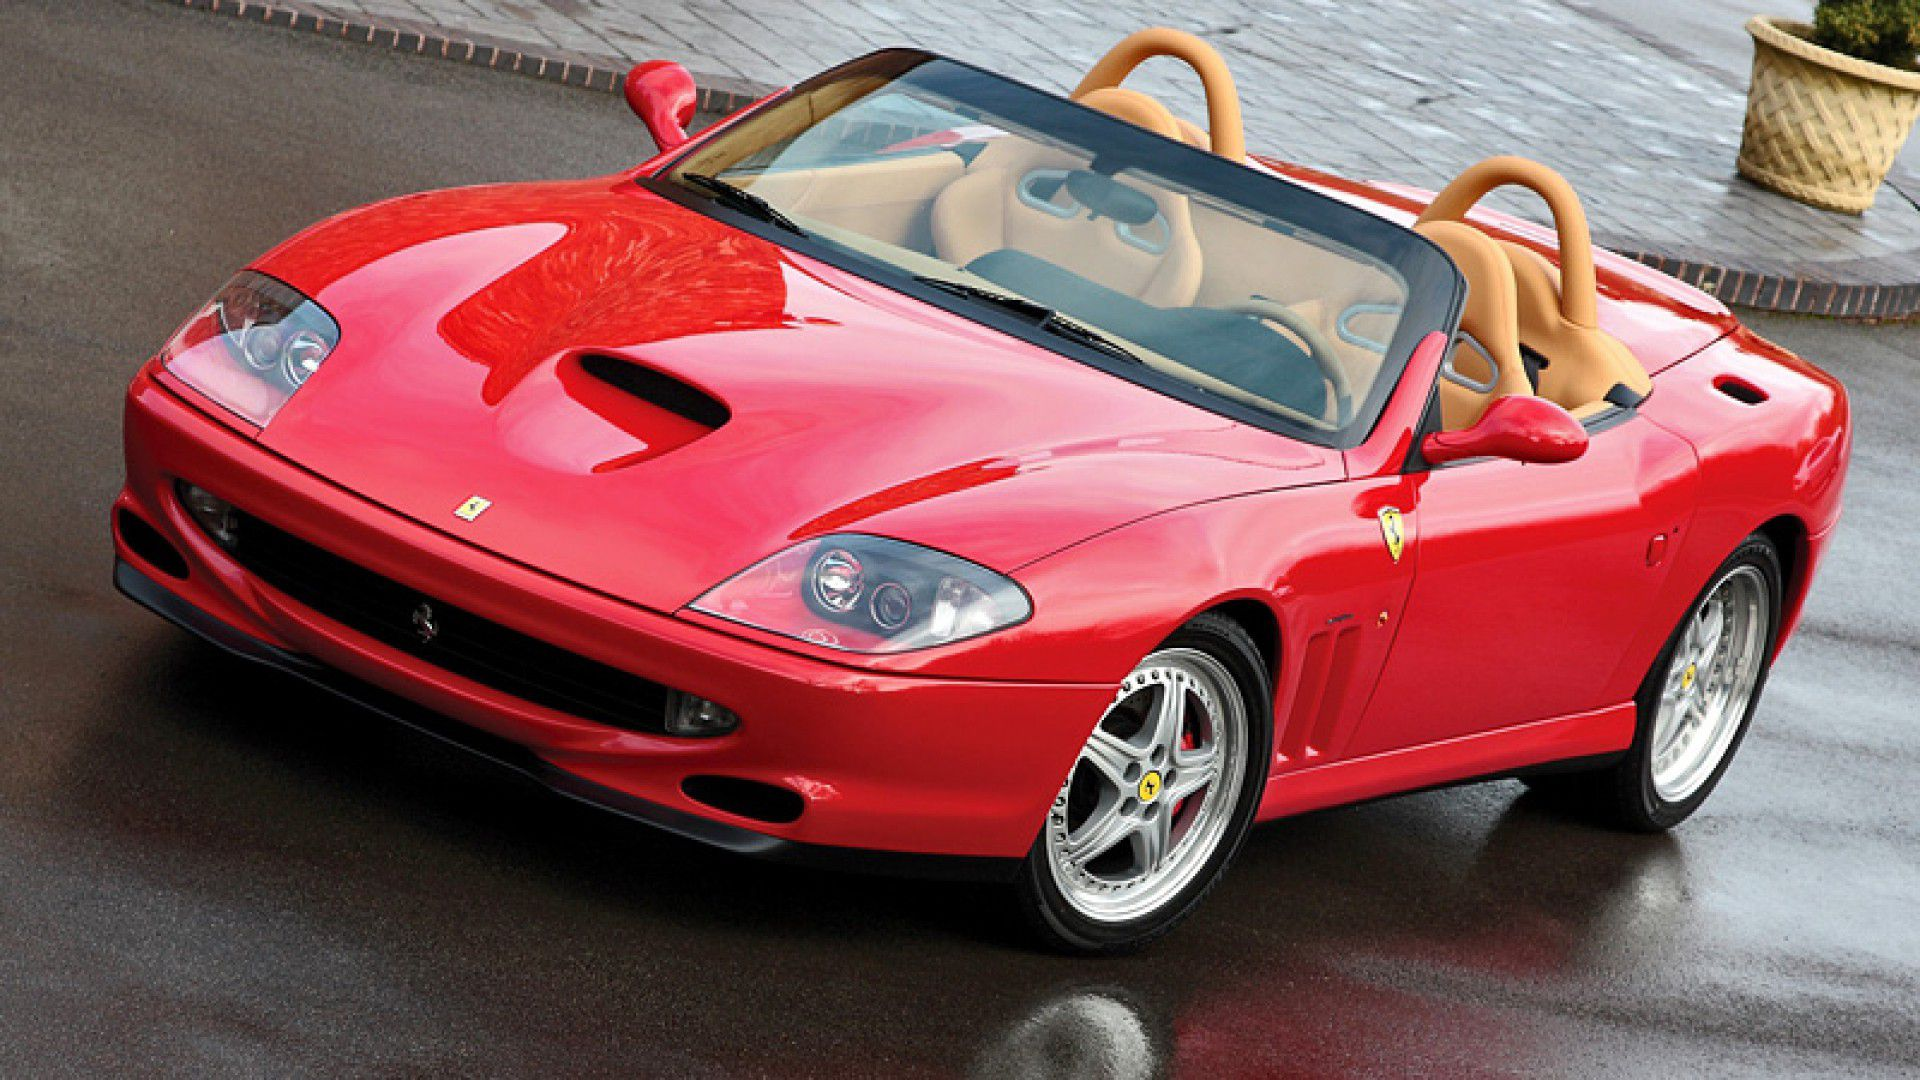 Ferrari 550 Barchetta 187 Definitive List Cars